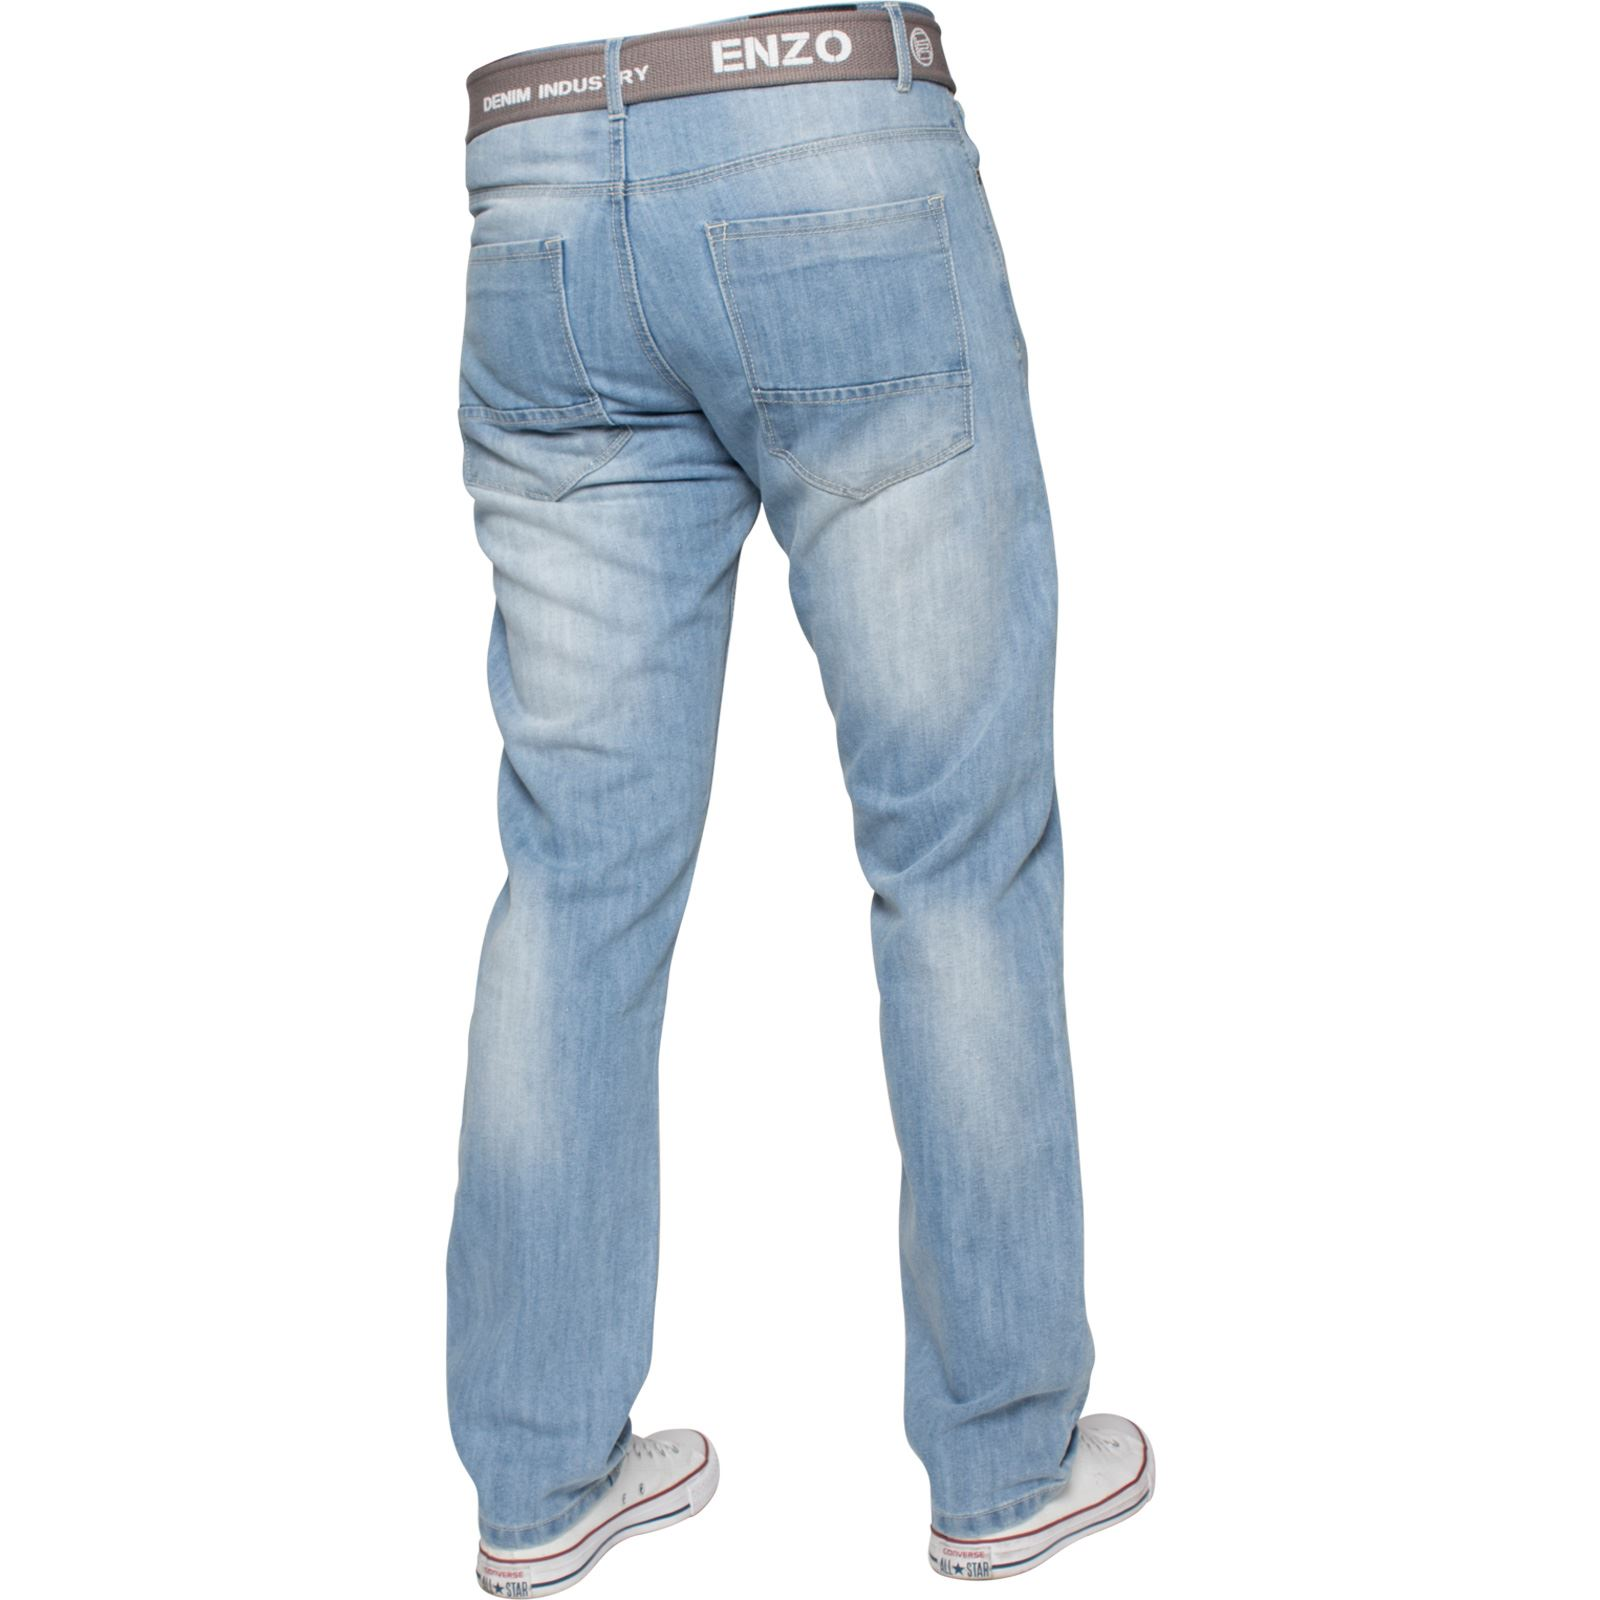 Enzo-Mens-Designer-Jeans-Regular-Fit-Denim-Pants-Big-Tall-All-Waist-Sizes thumbnail 16